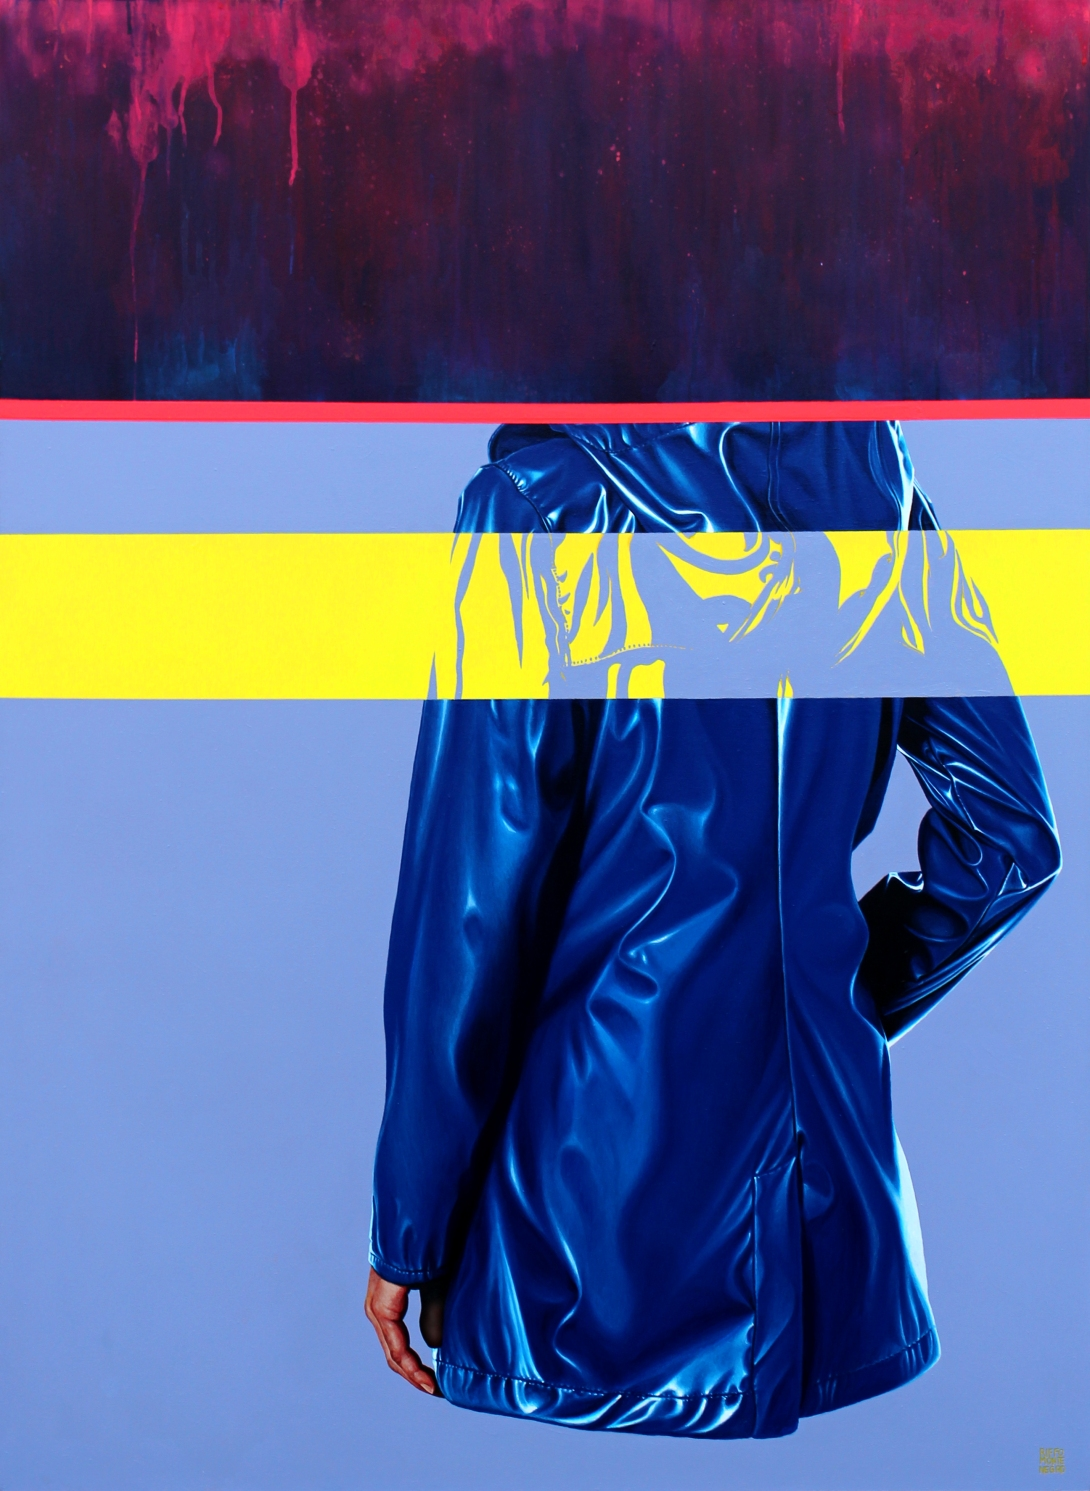 srm untitled raincoat14 150x110cm oct 2019